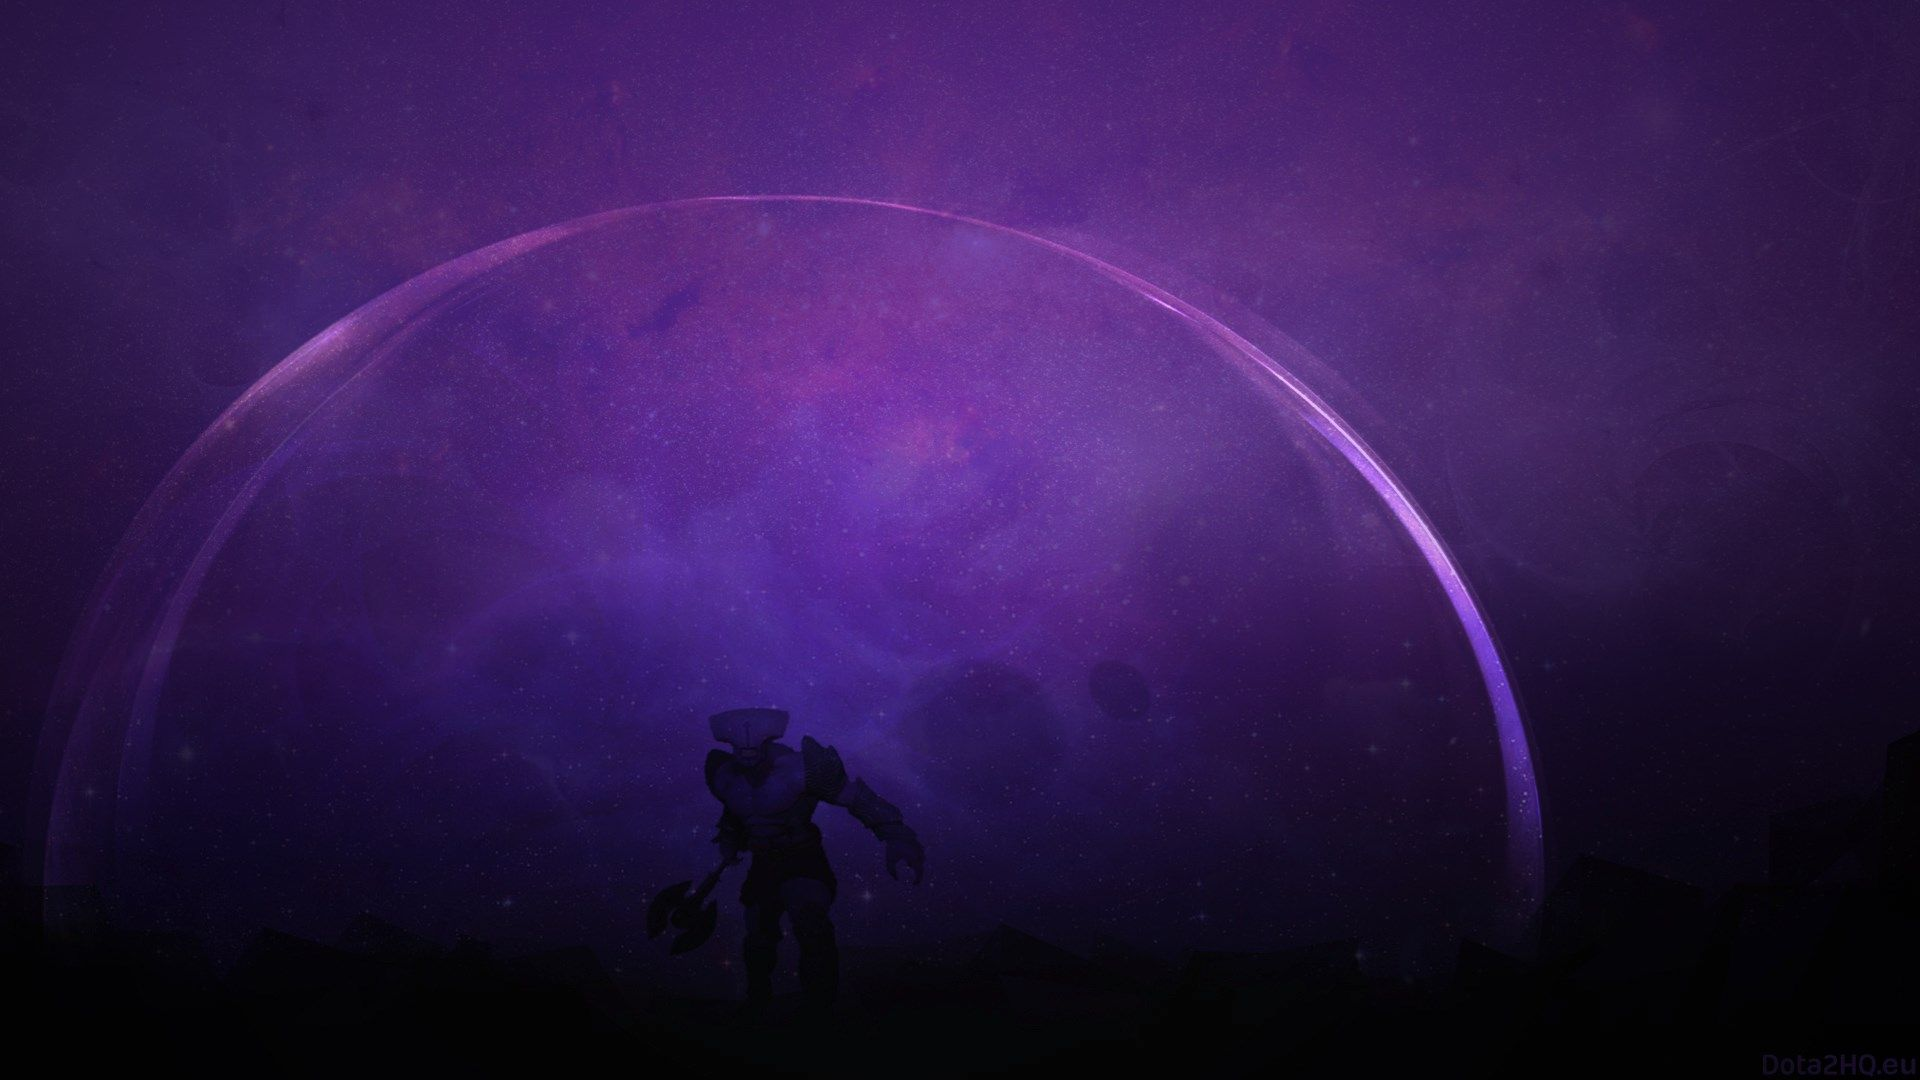 1920x1080 faceless void dota 2 background Dota 2 Dota 2 1920x1080